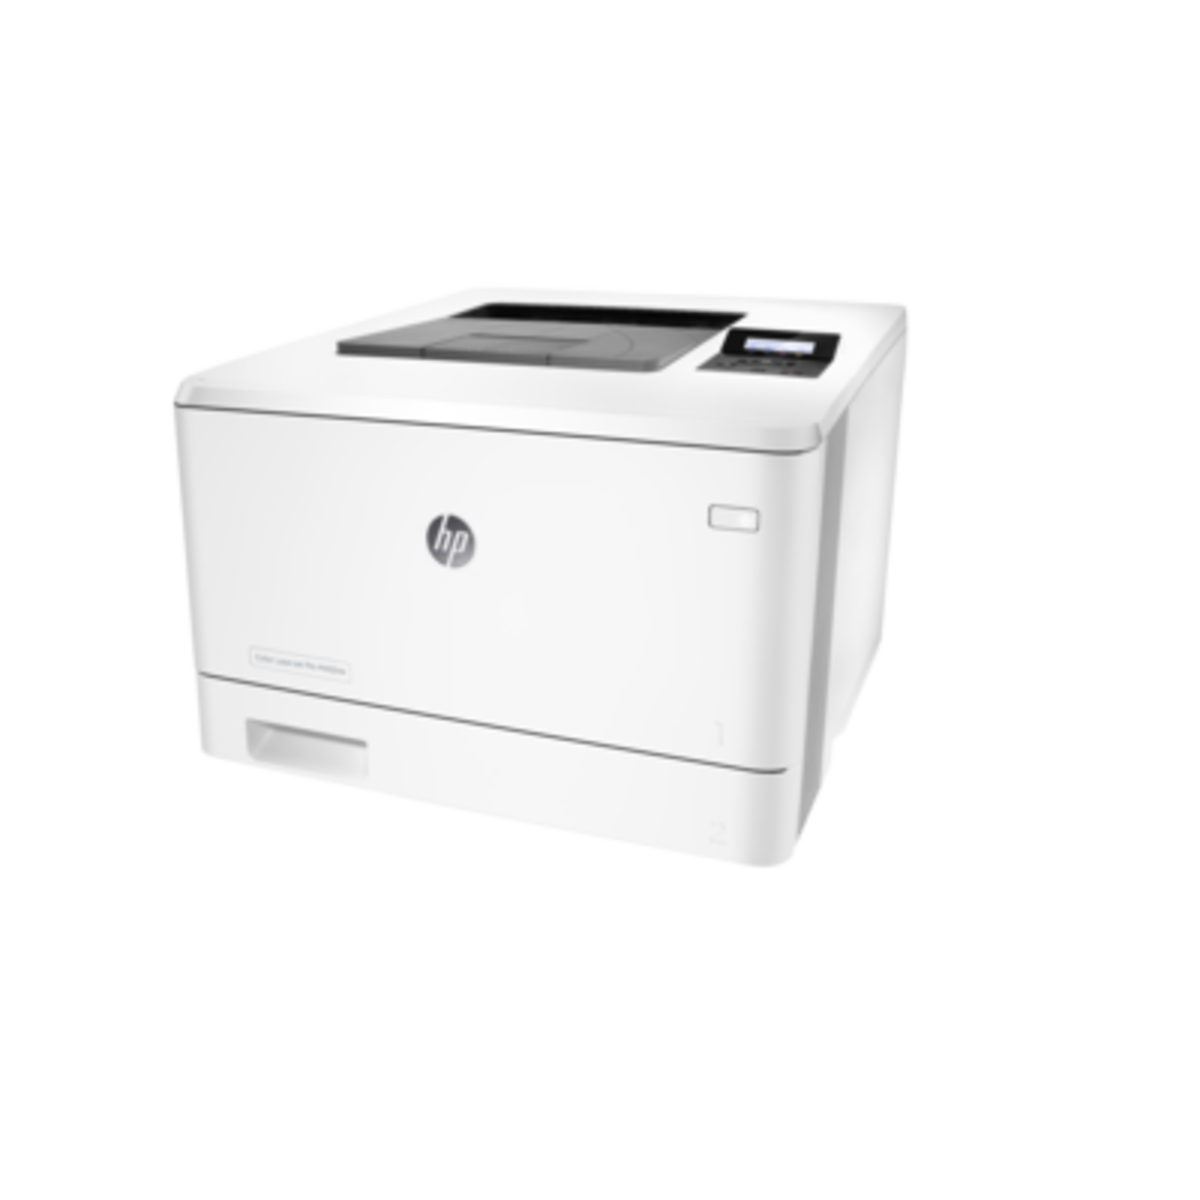 HP LaserJet Pro M452nw Colour Printer